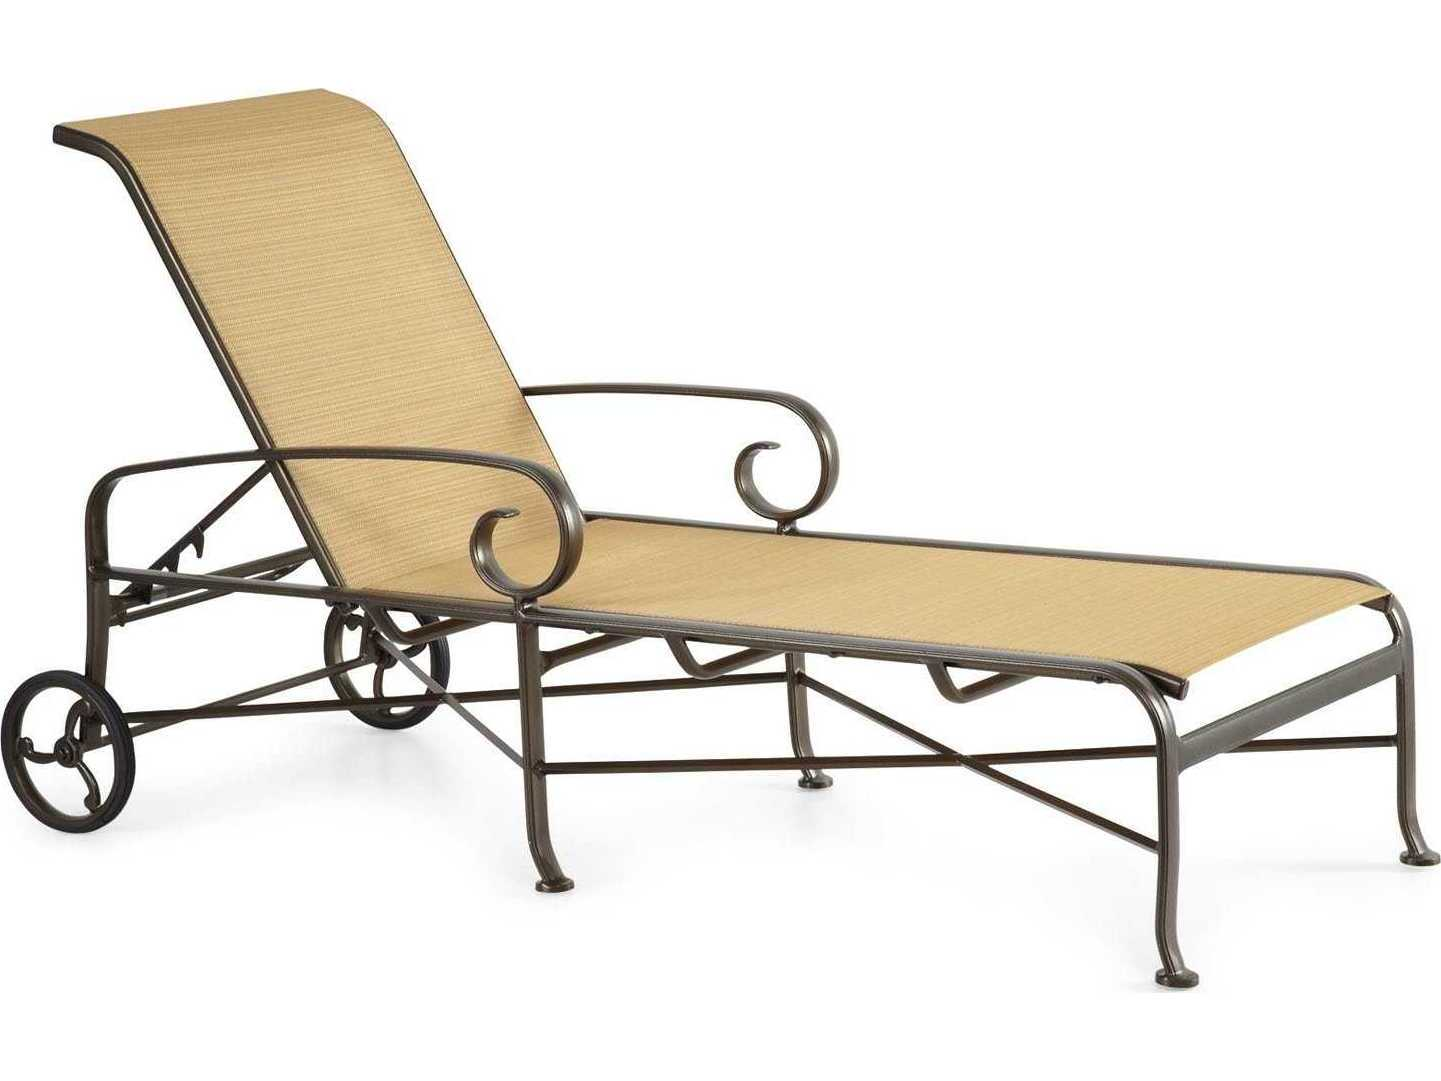 Winston veneto sling cast aluminum arm chaise lounge m55009 for Cast aluminum chaise lounge